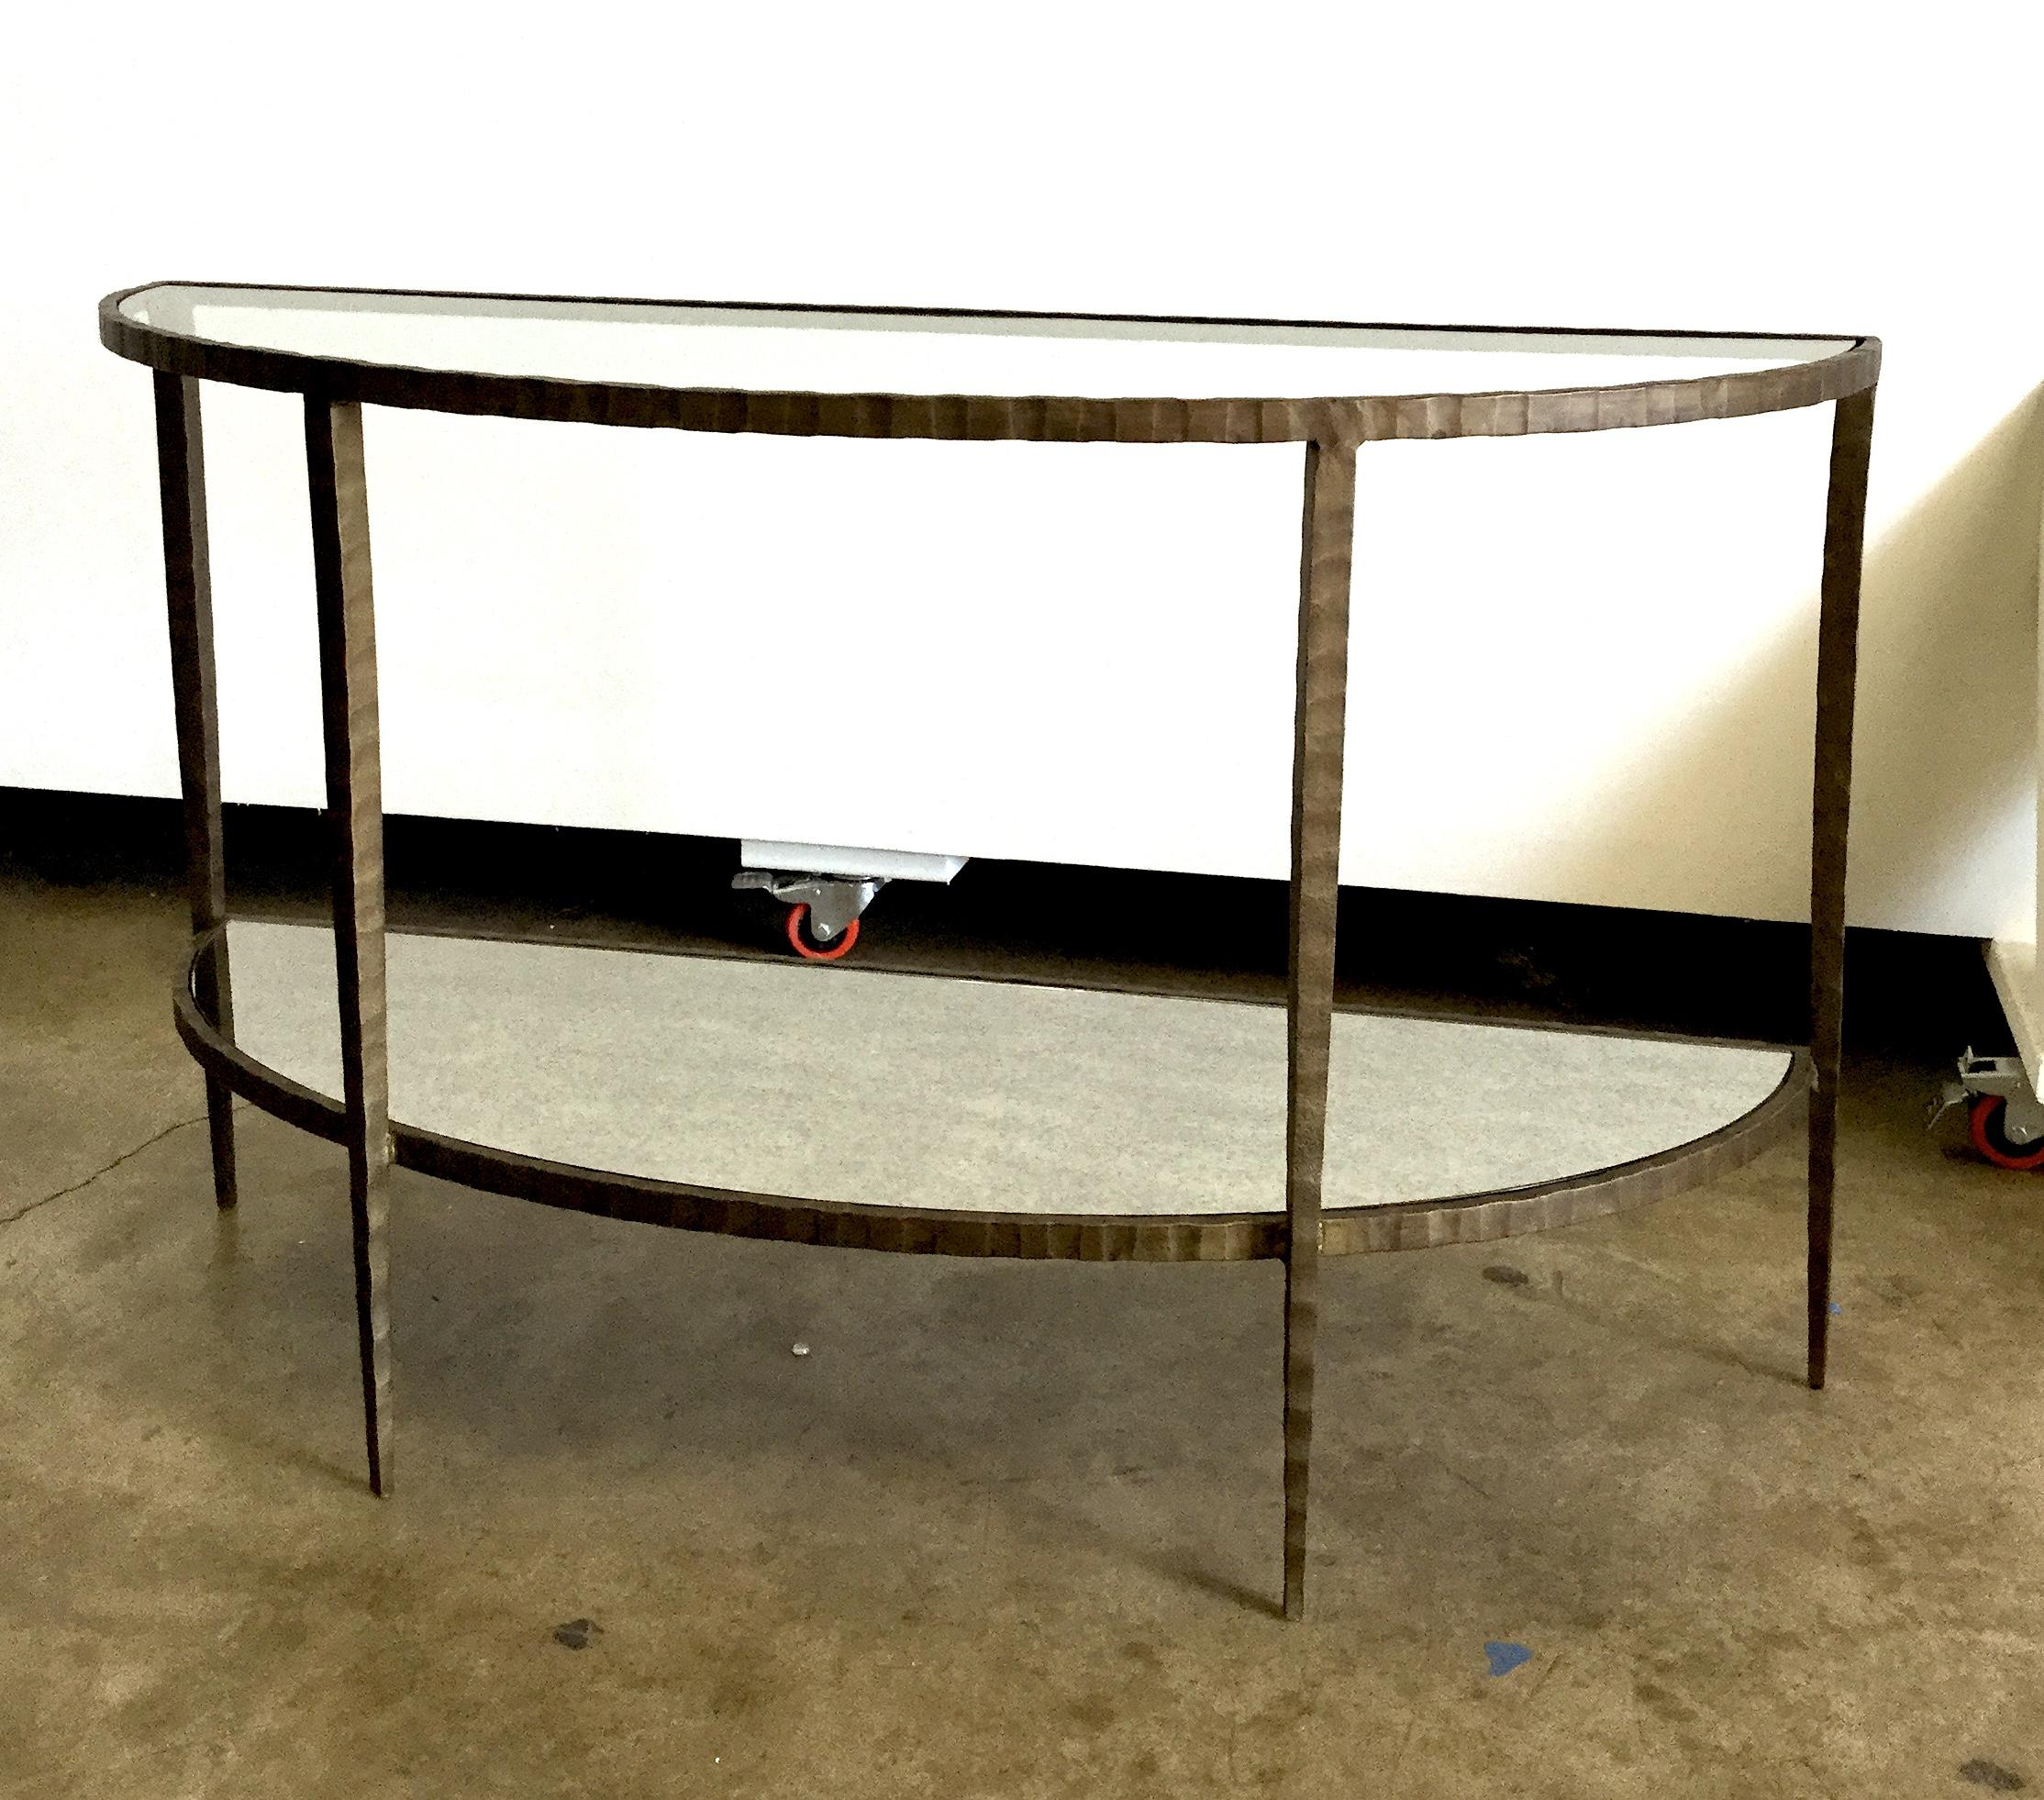 Offered Is A Demilune Console With Hammered Antiqued Brass Finished Frame.  Glass Top And Antiqued